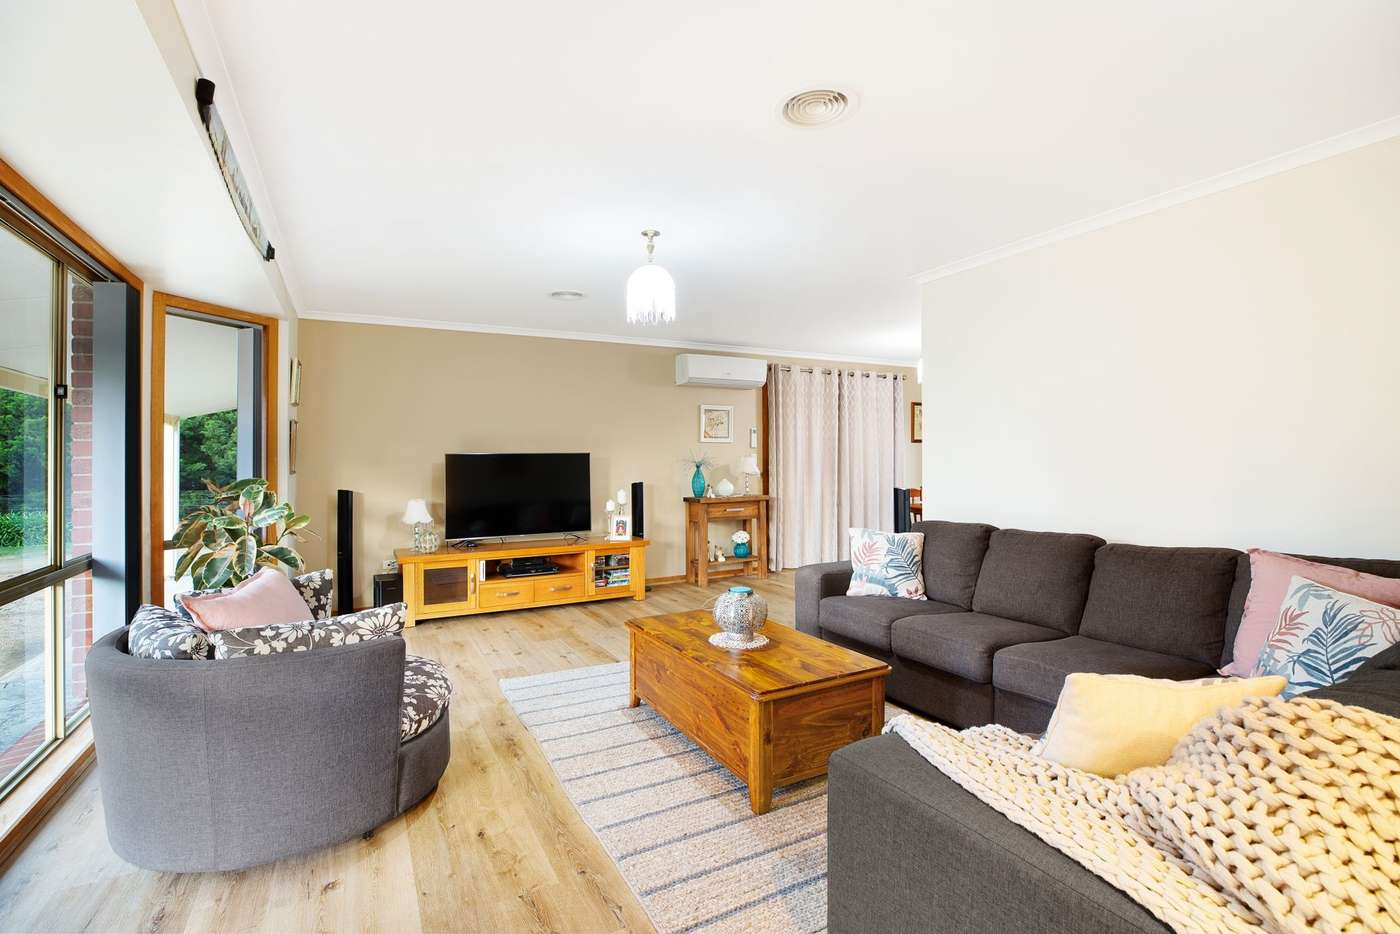 Sixth view of Homely house listing, 25 Newnham Drive, Romsey VIC 3434